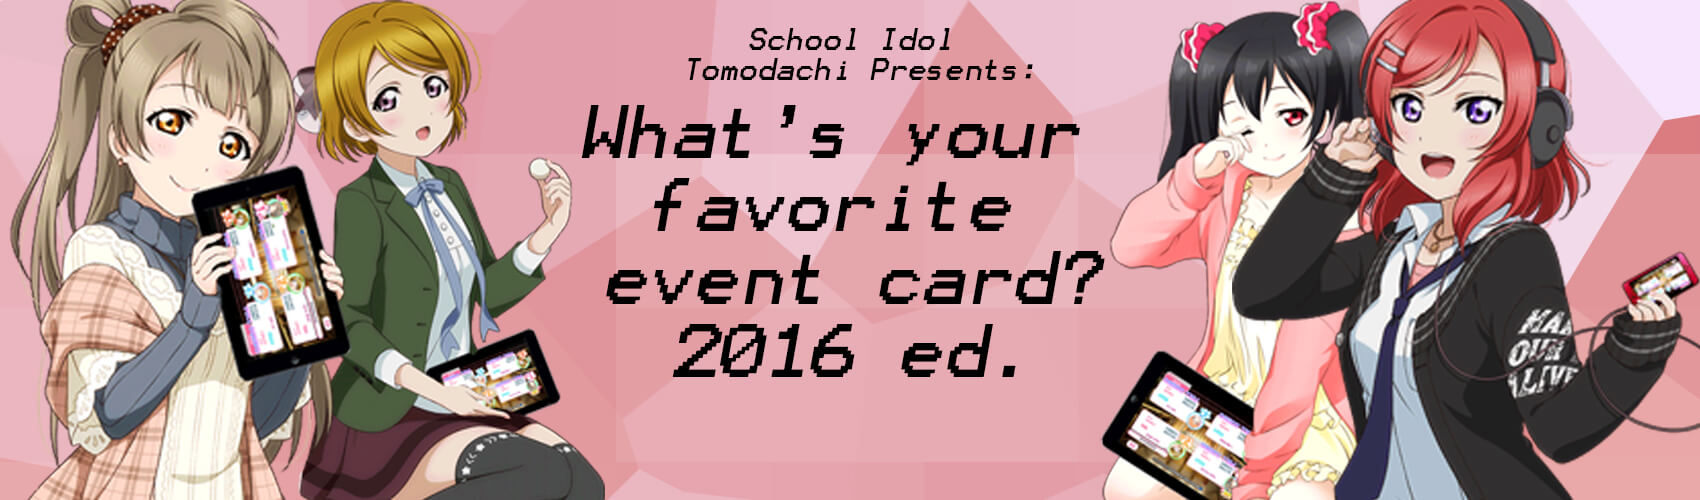 What's your favorite event card? 2016 ed.